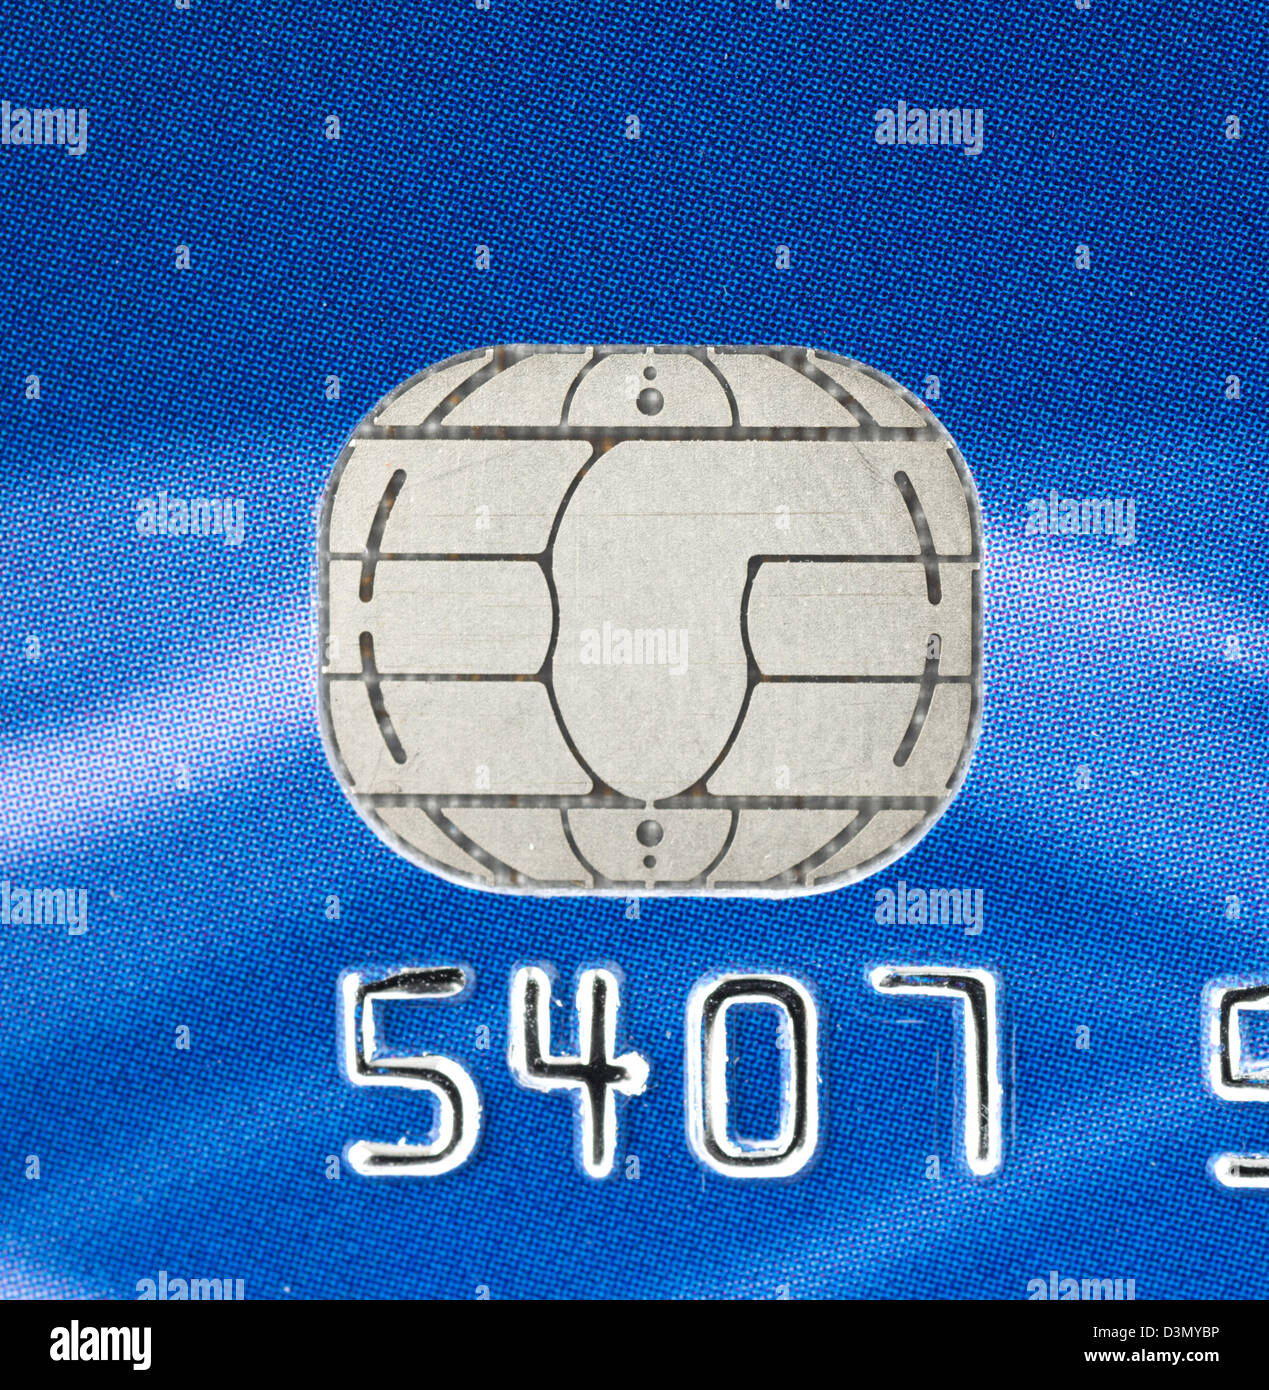 Chip on a Chip and Pin credit card - Stock Image